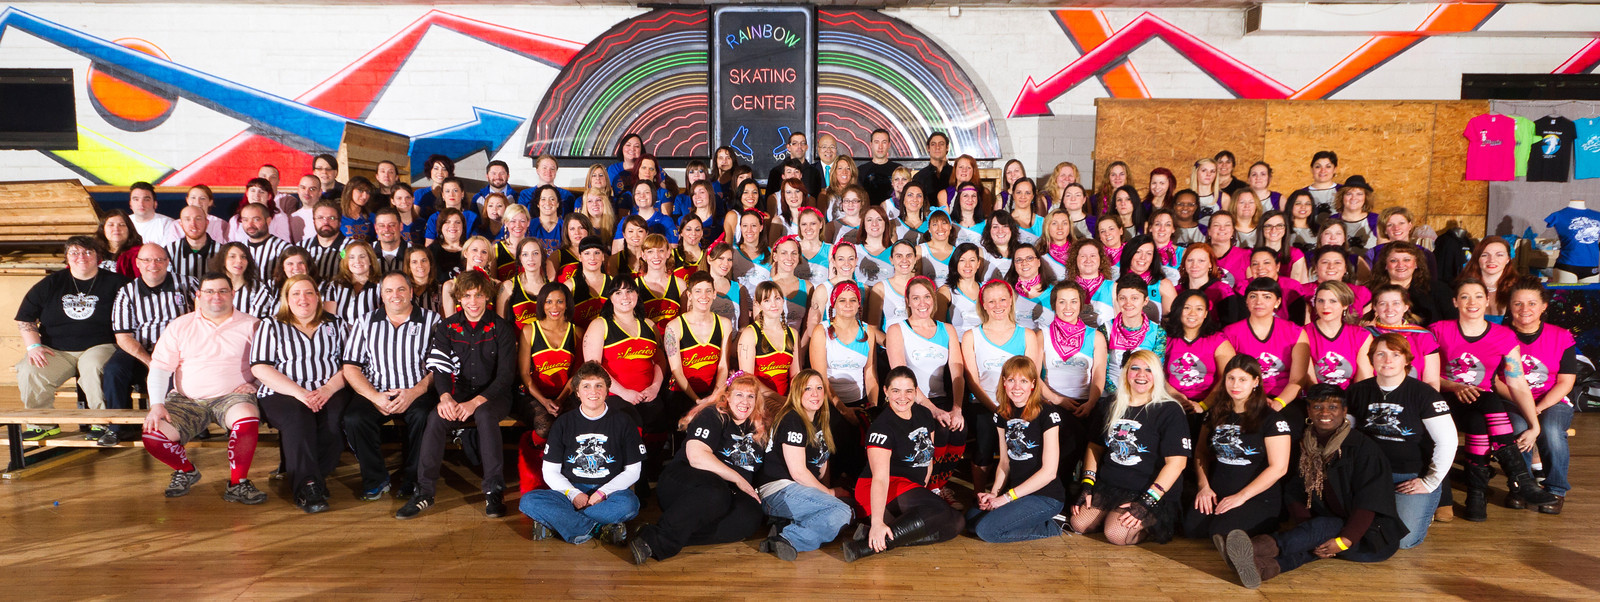 2013 Queen City Roller Girls   Photo by Andy Foremiak